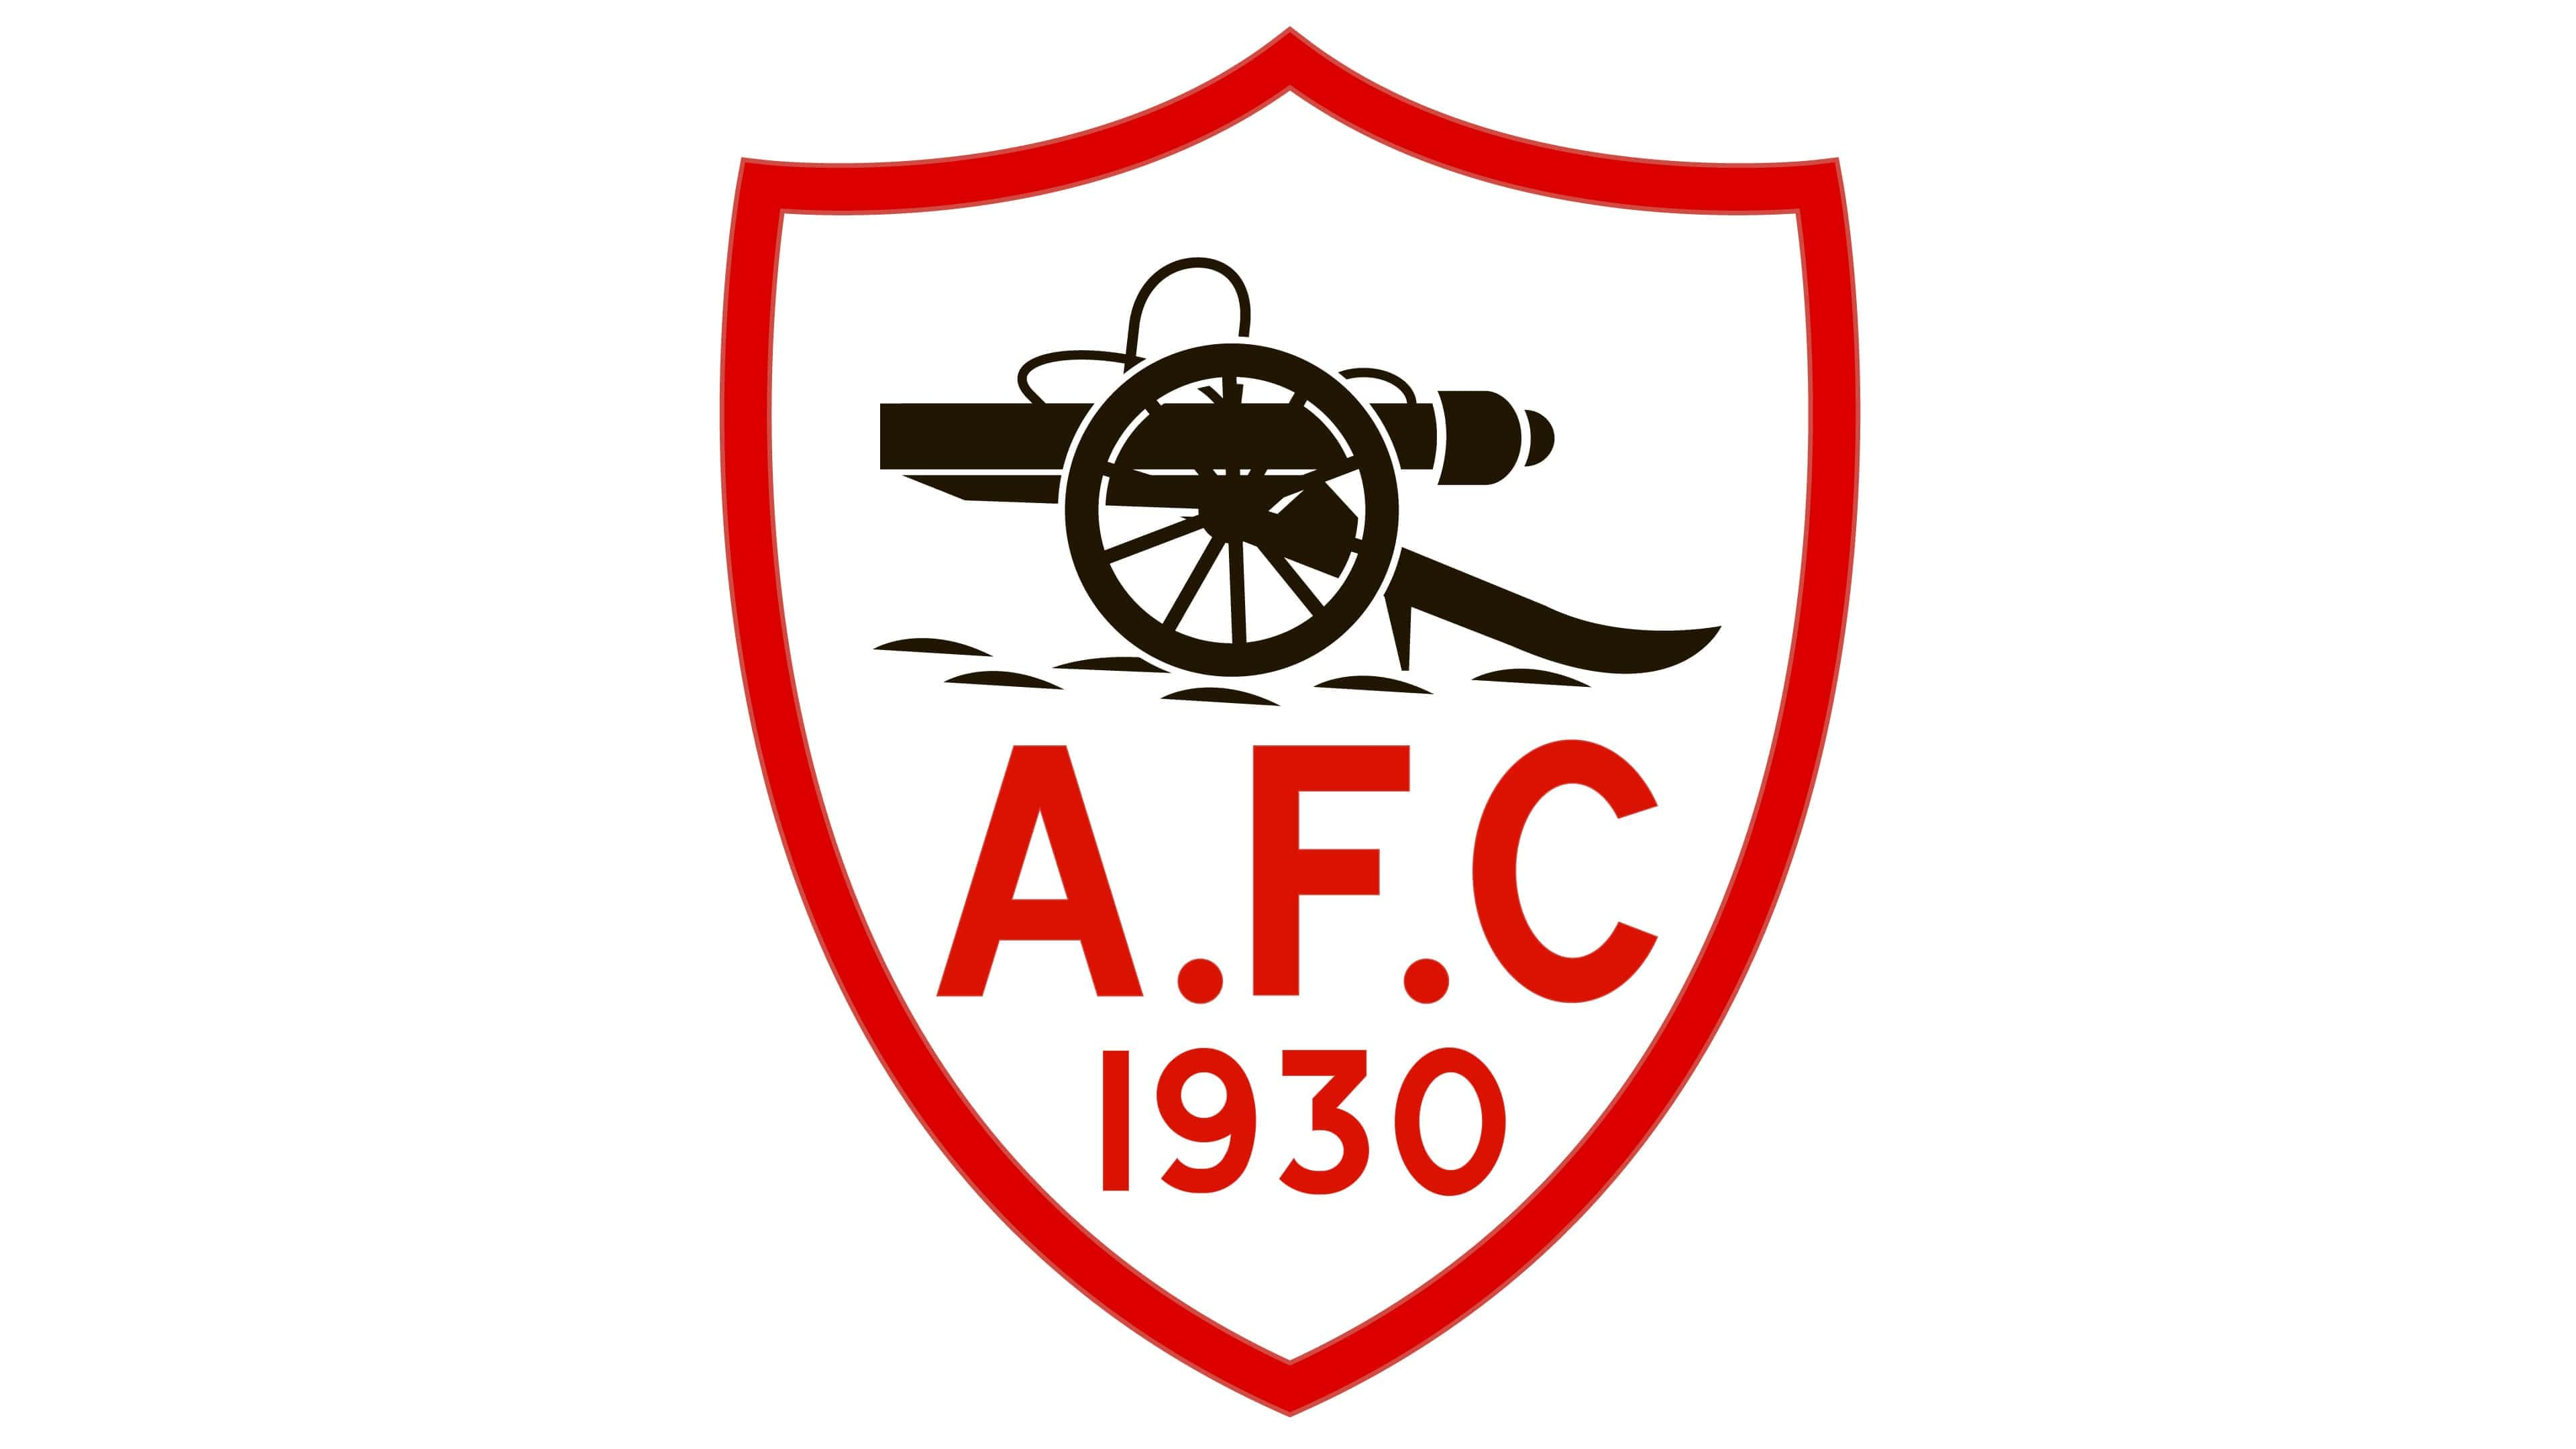 Arsenal Logo   The most famous brands and company logos in ...